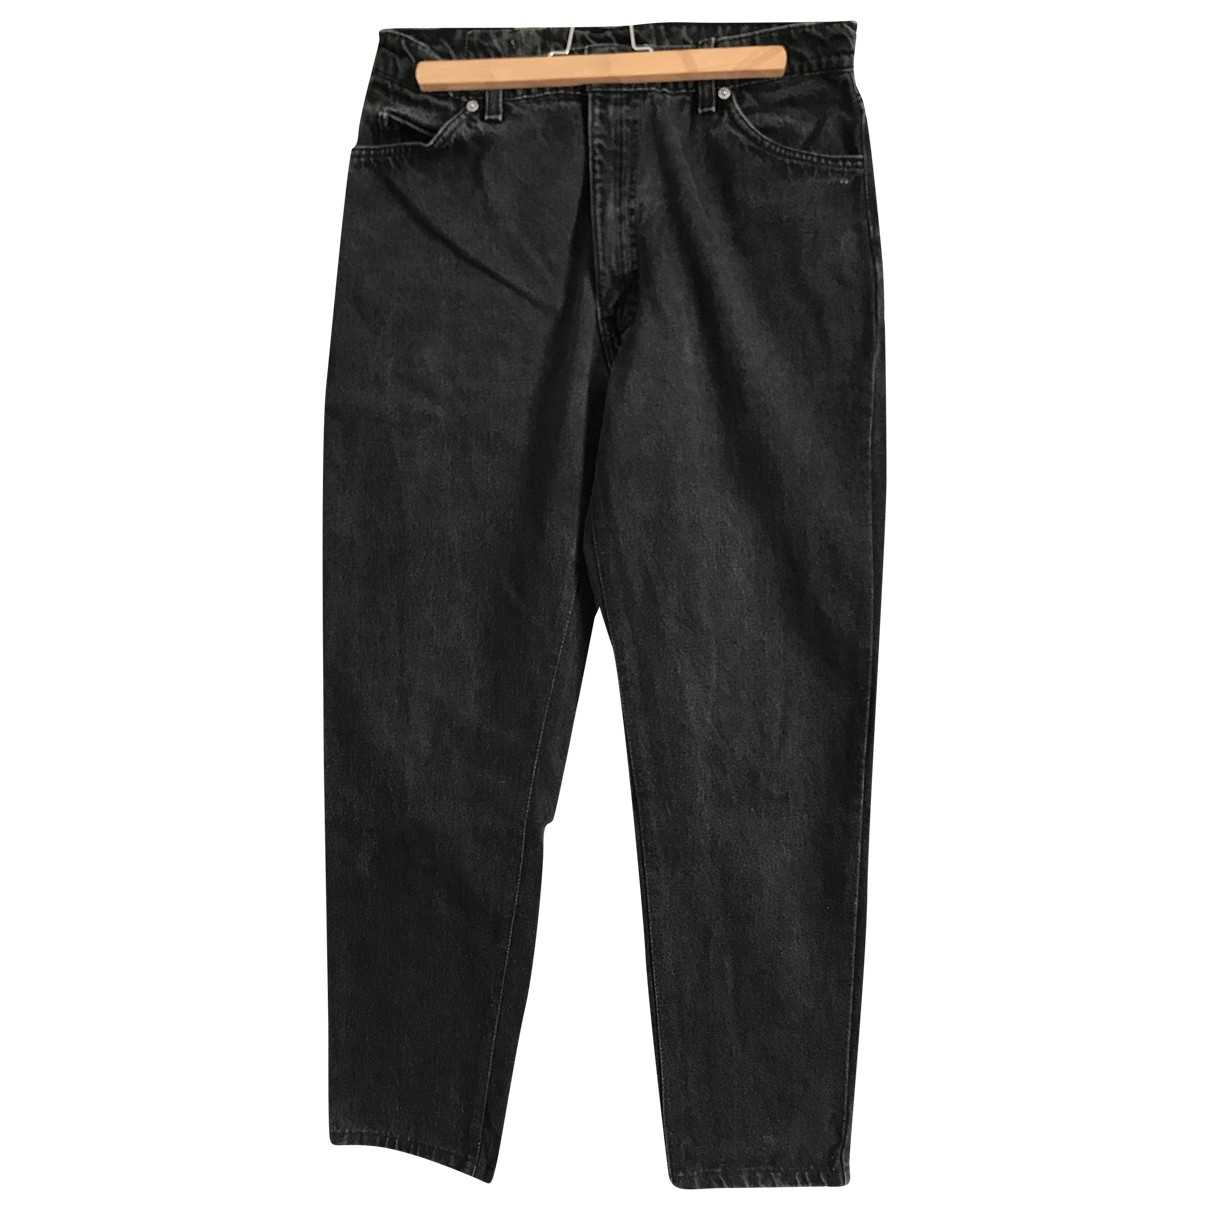 Levi's \N Black Cotton Trousers for Women M International